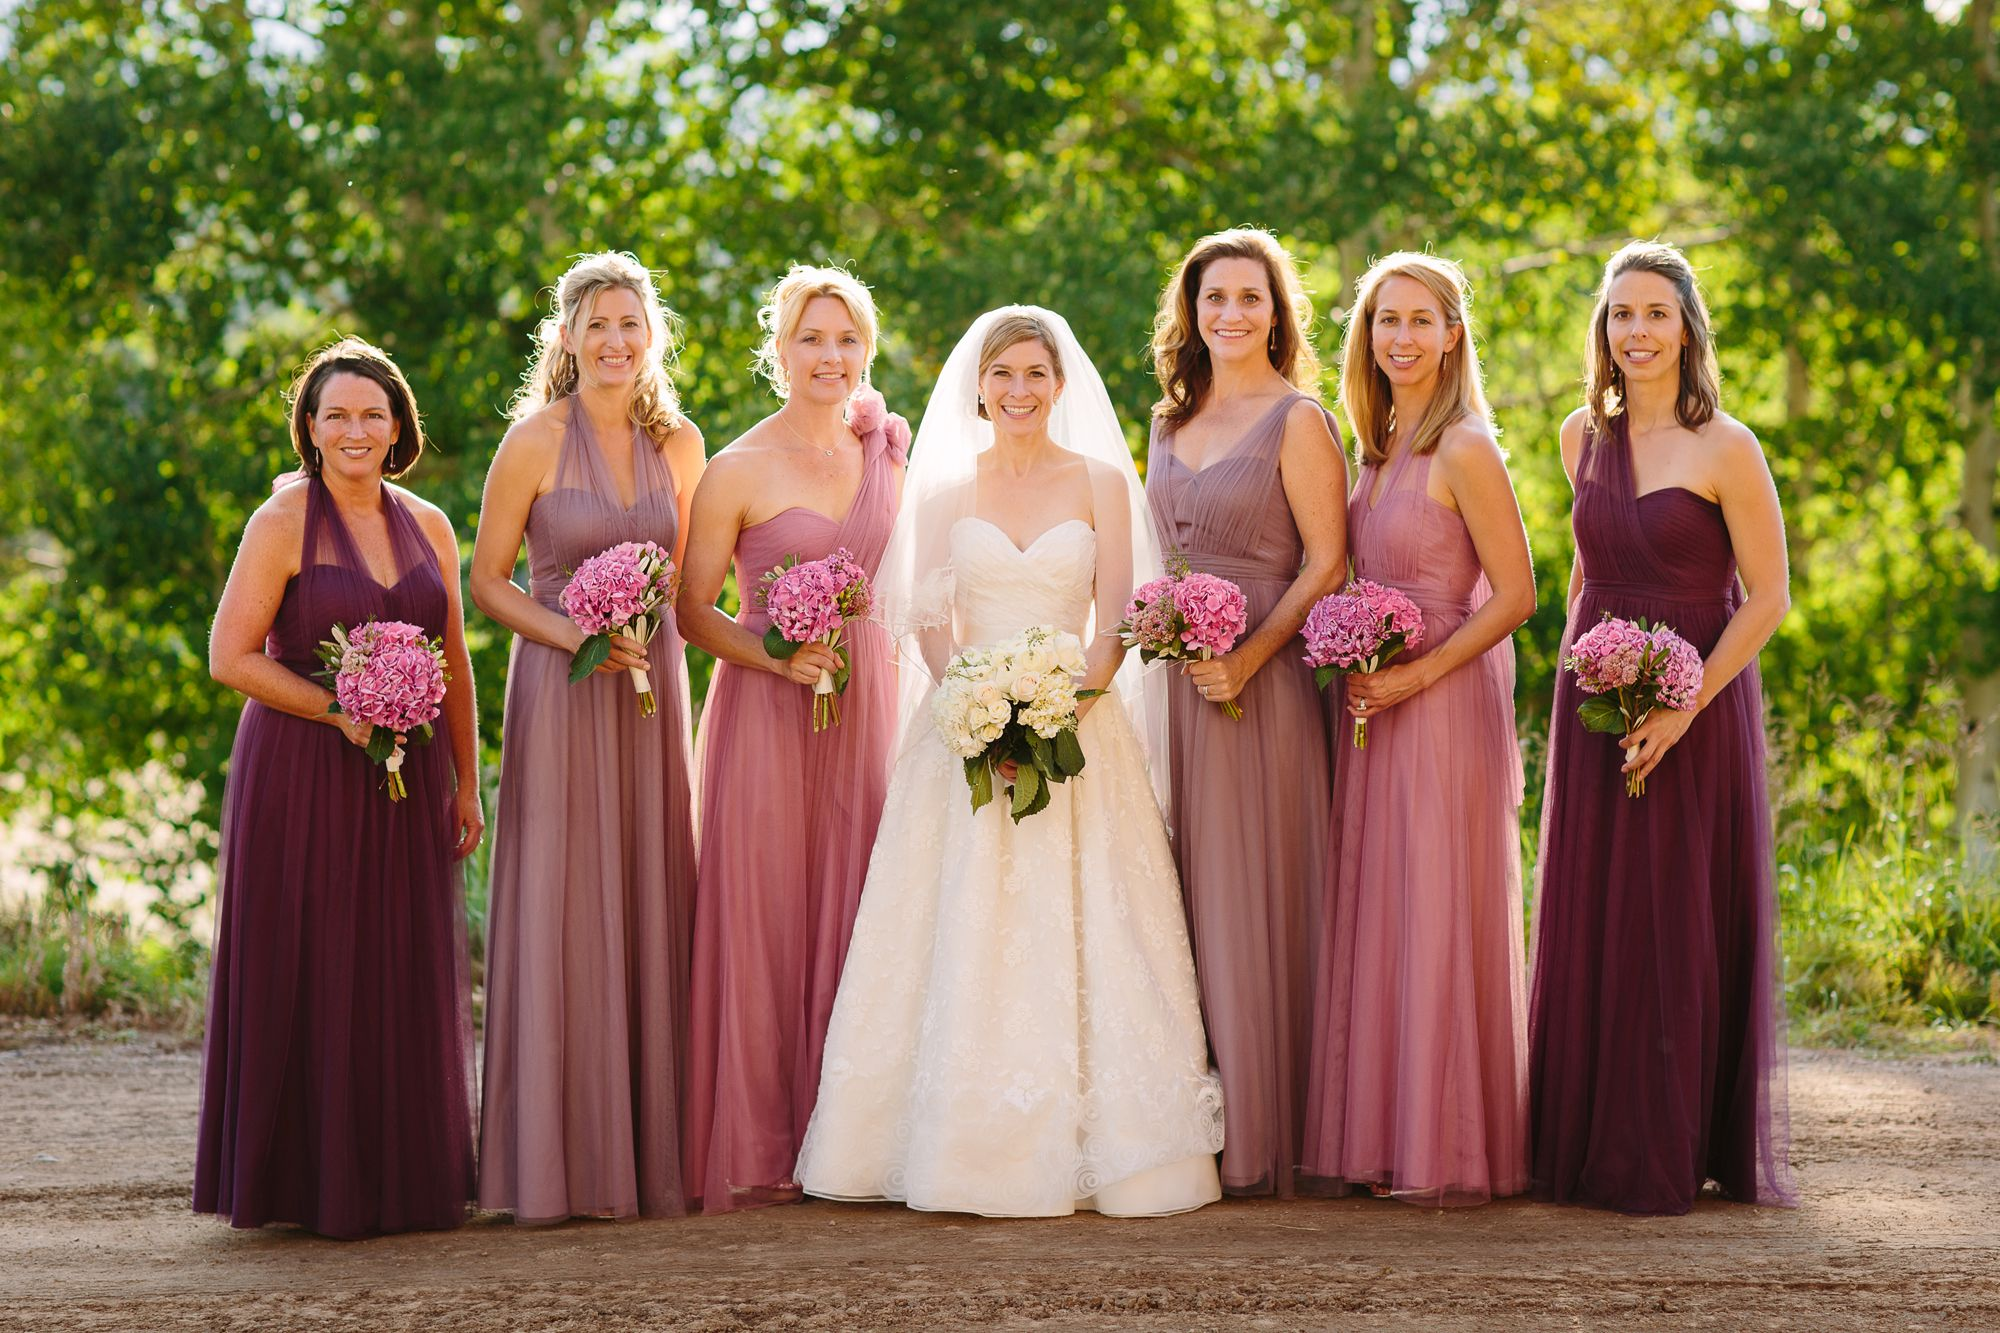 fall bridal party pictures%0A Bridal parties